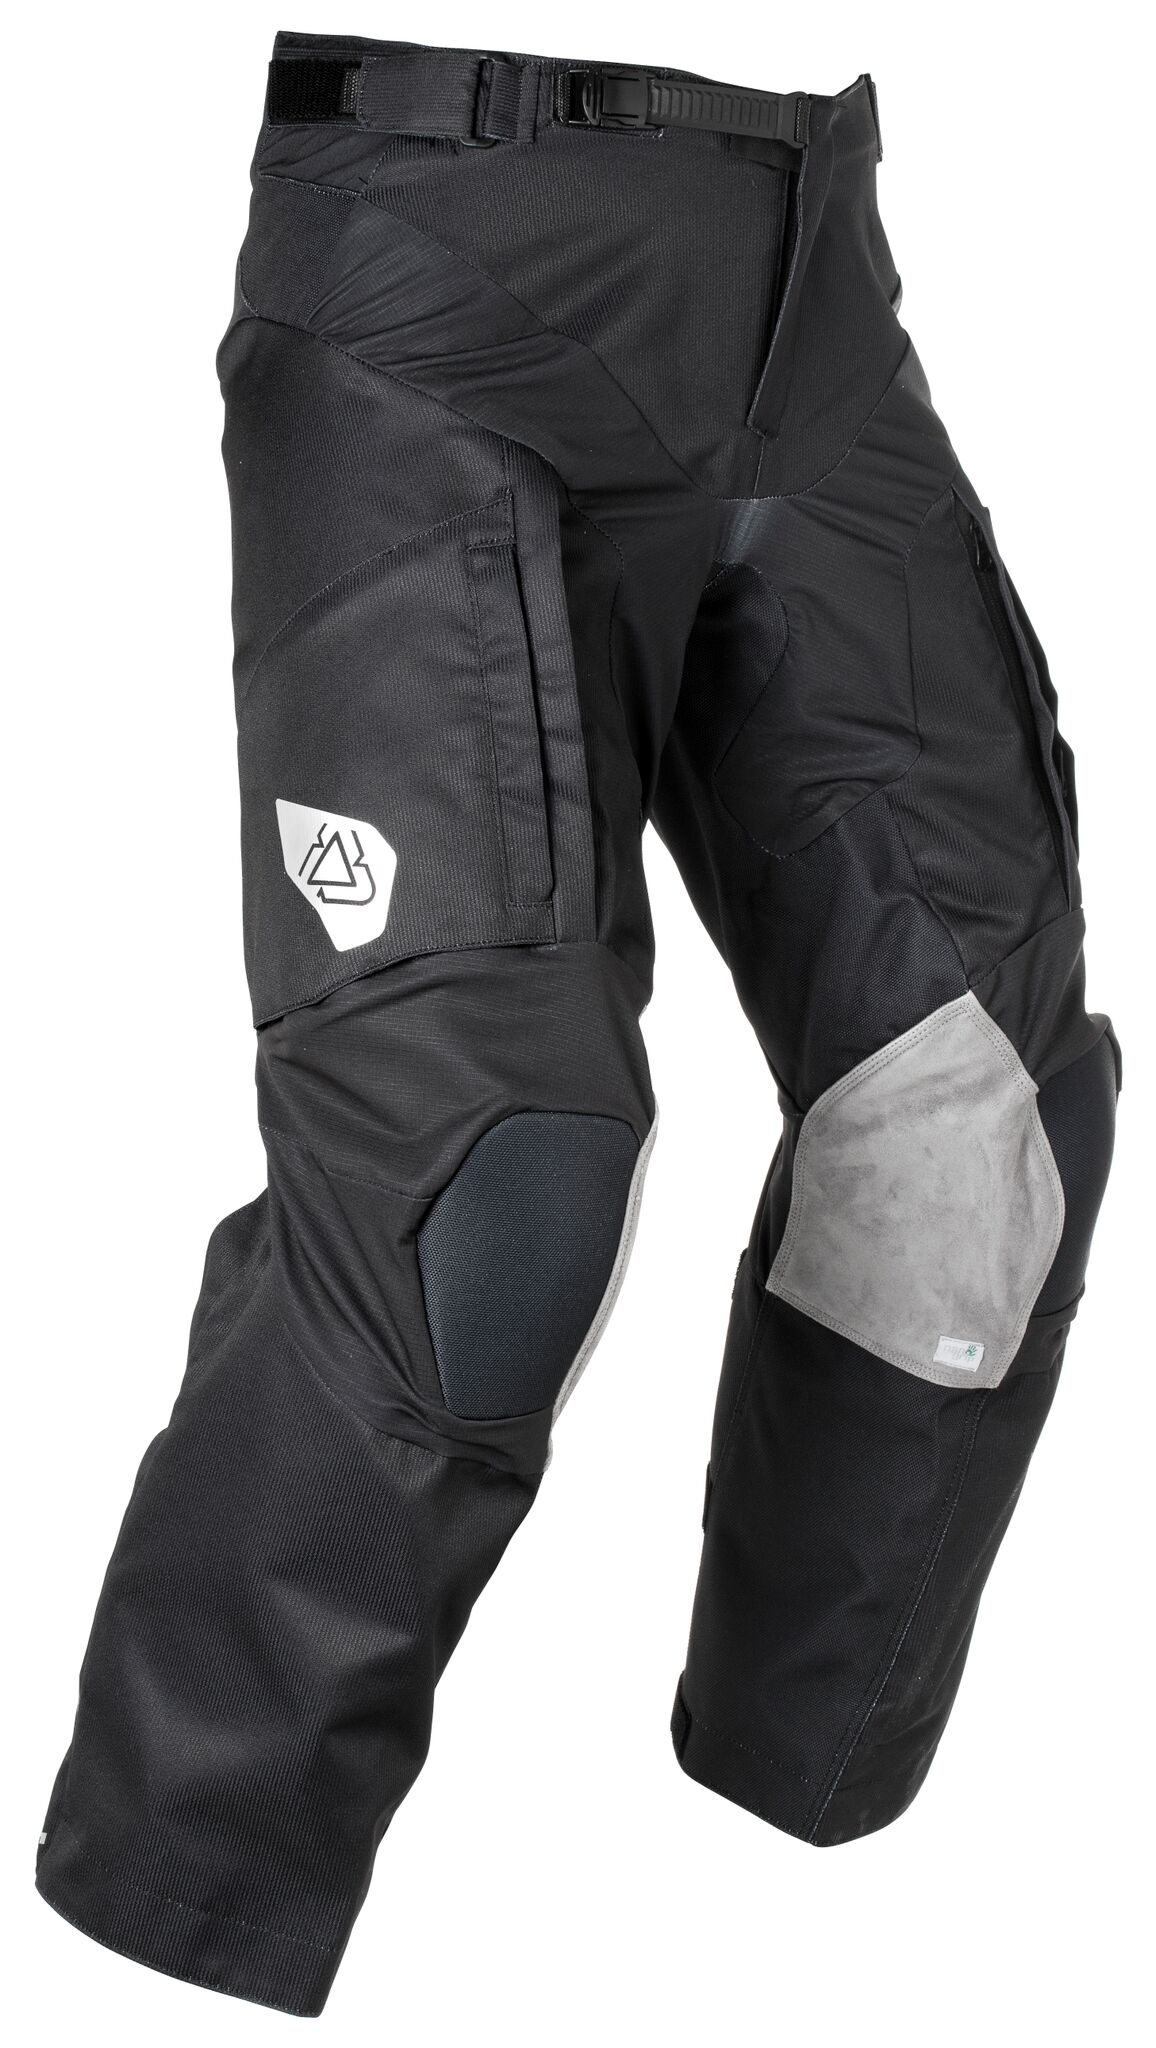 GPX 5.5 Enduro Black Grey Pants.JPG